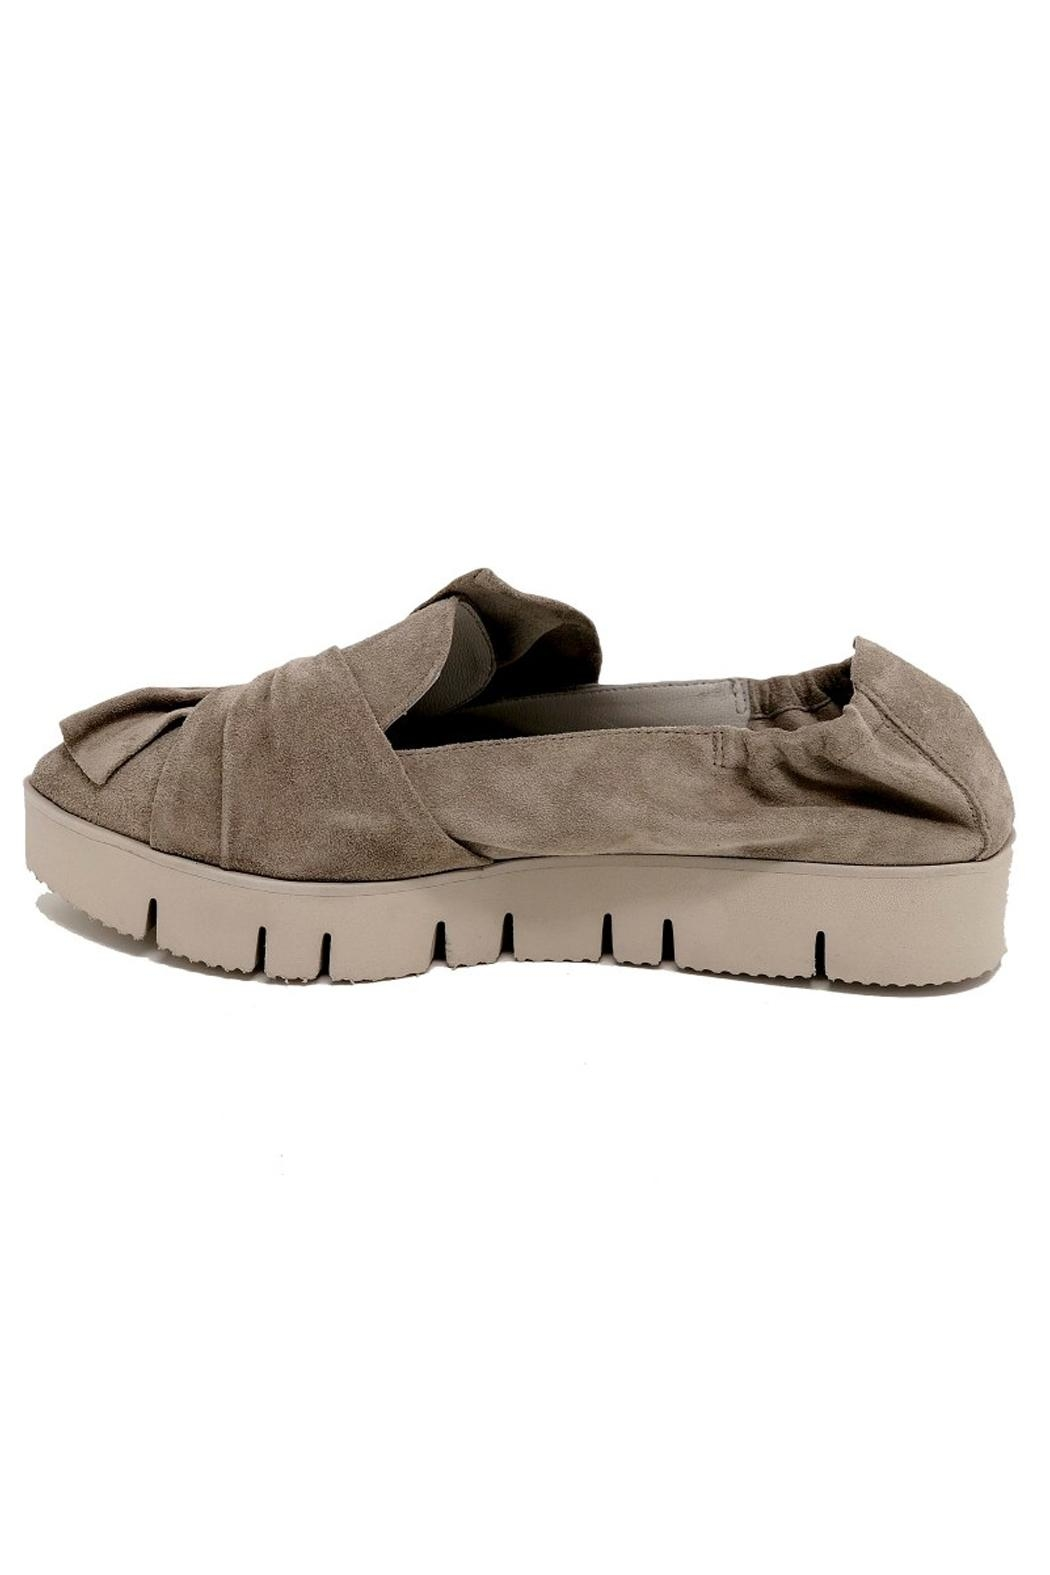 Kennel & Schmenger Bow Suede Sneaker - Front Full Image